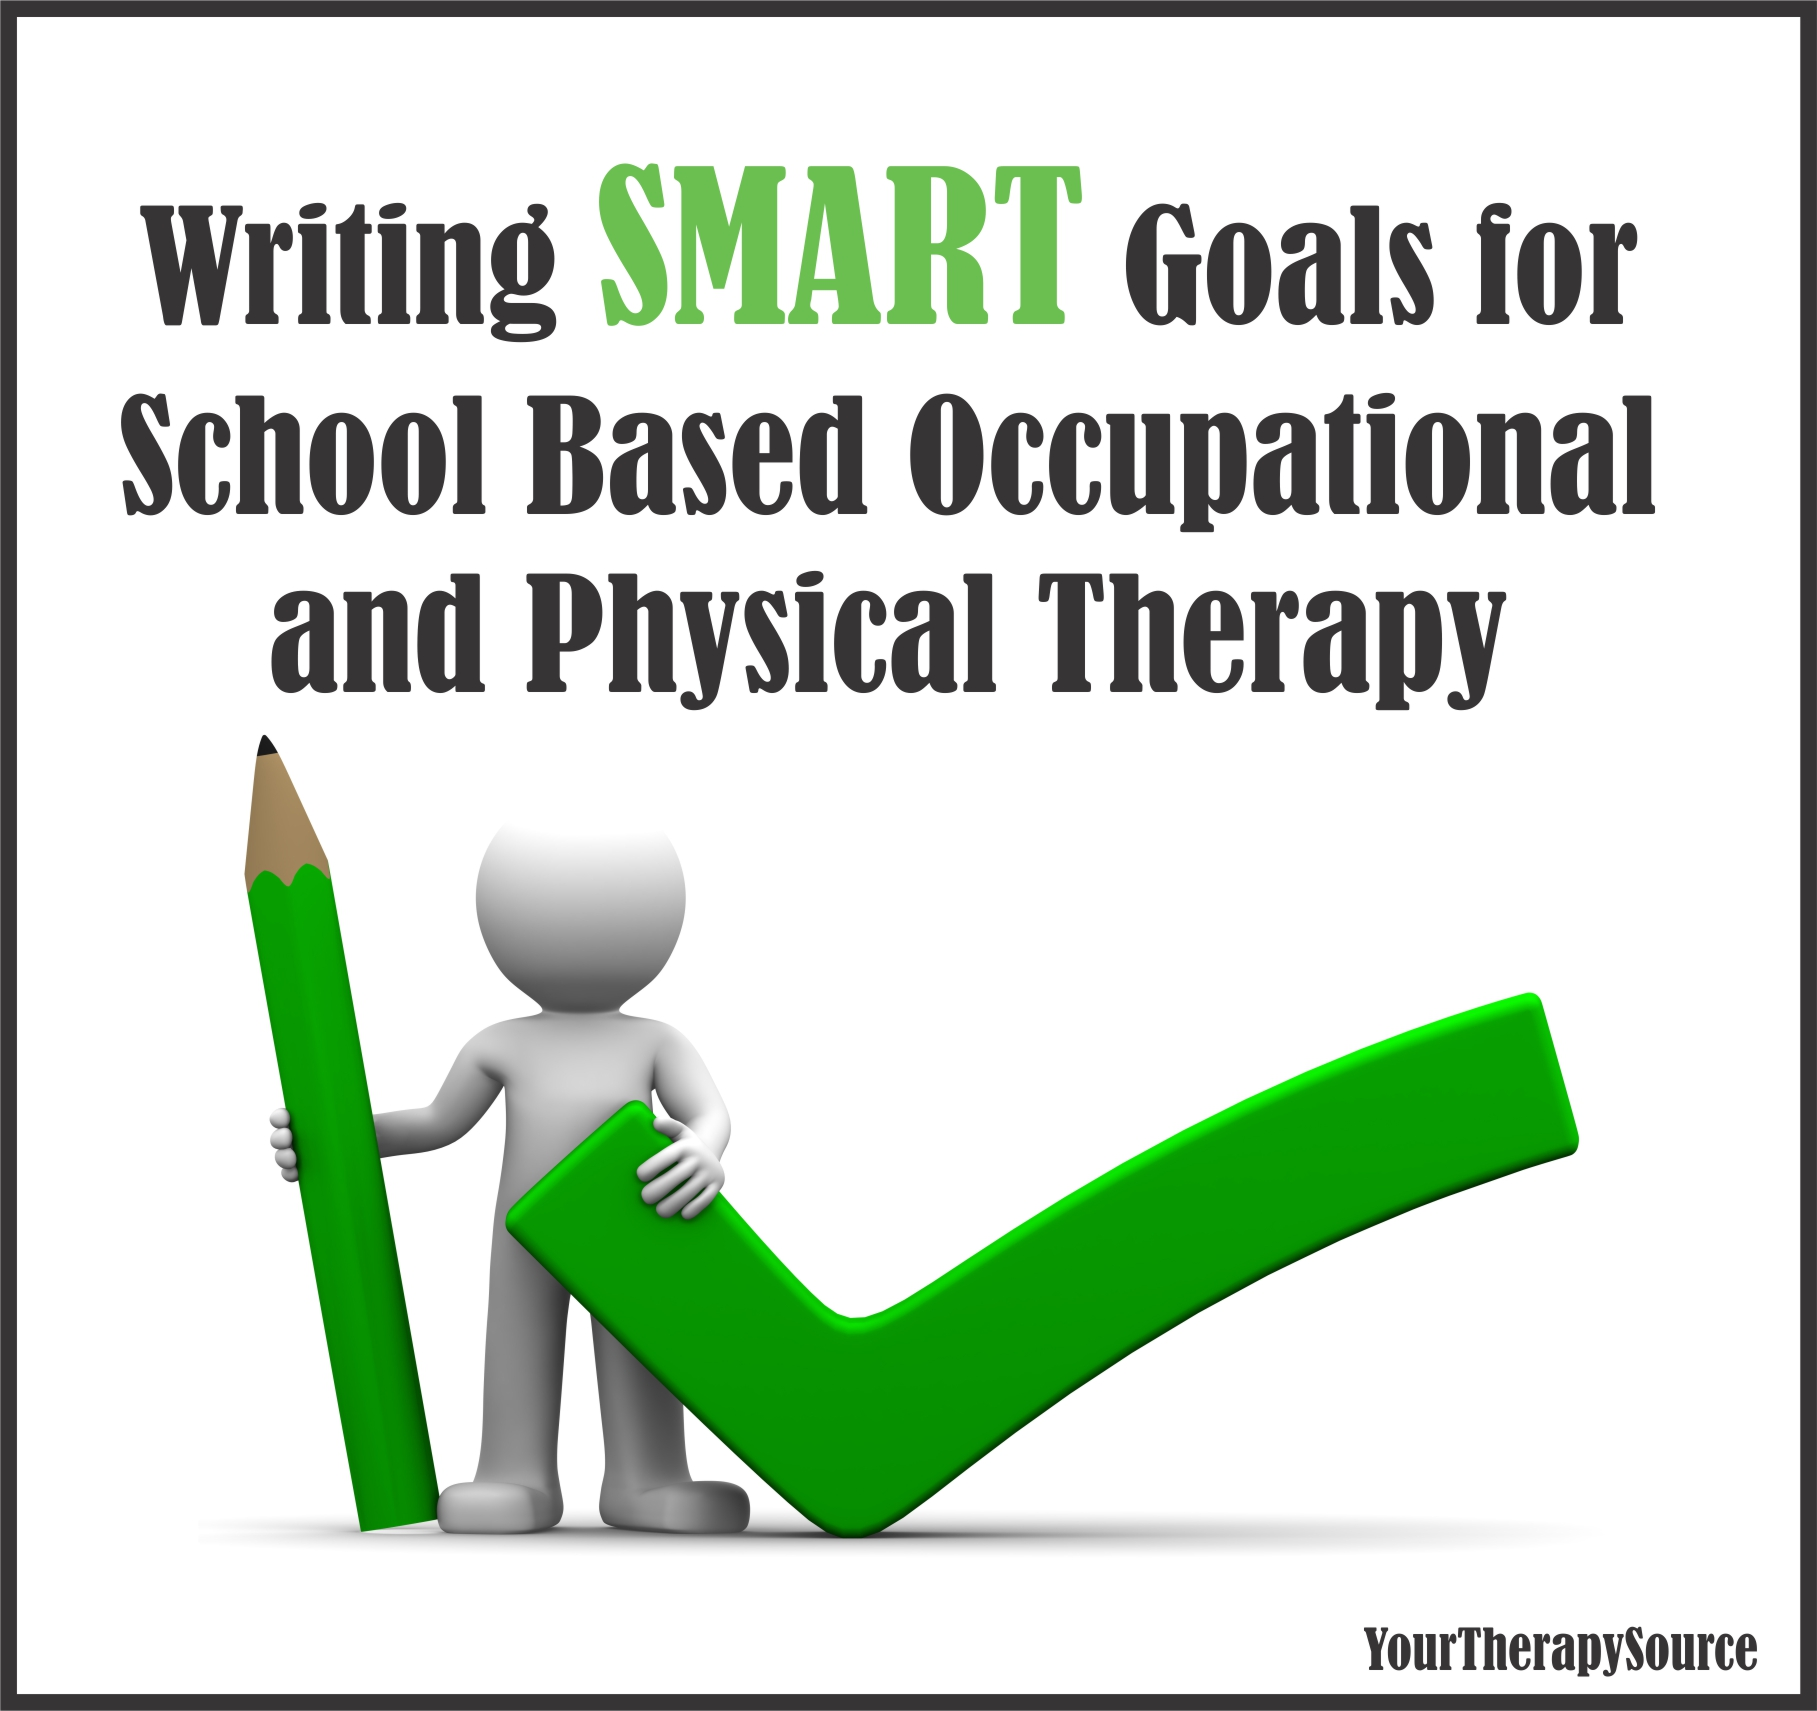 Writing SMART Goals for School Based OT and PT - www.YourTherapySource.com